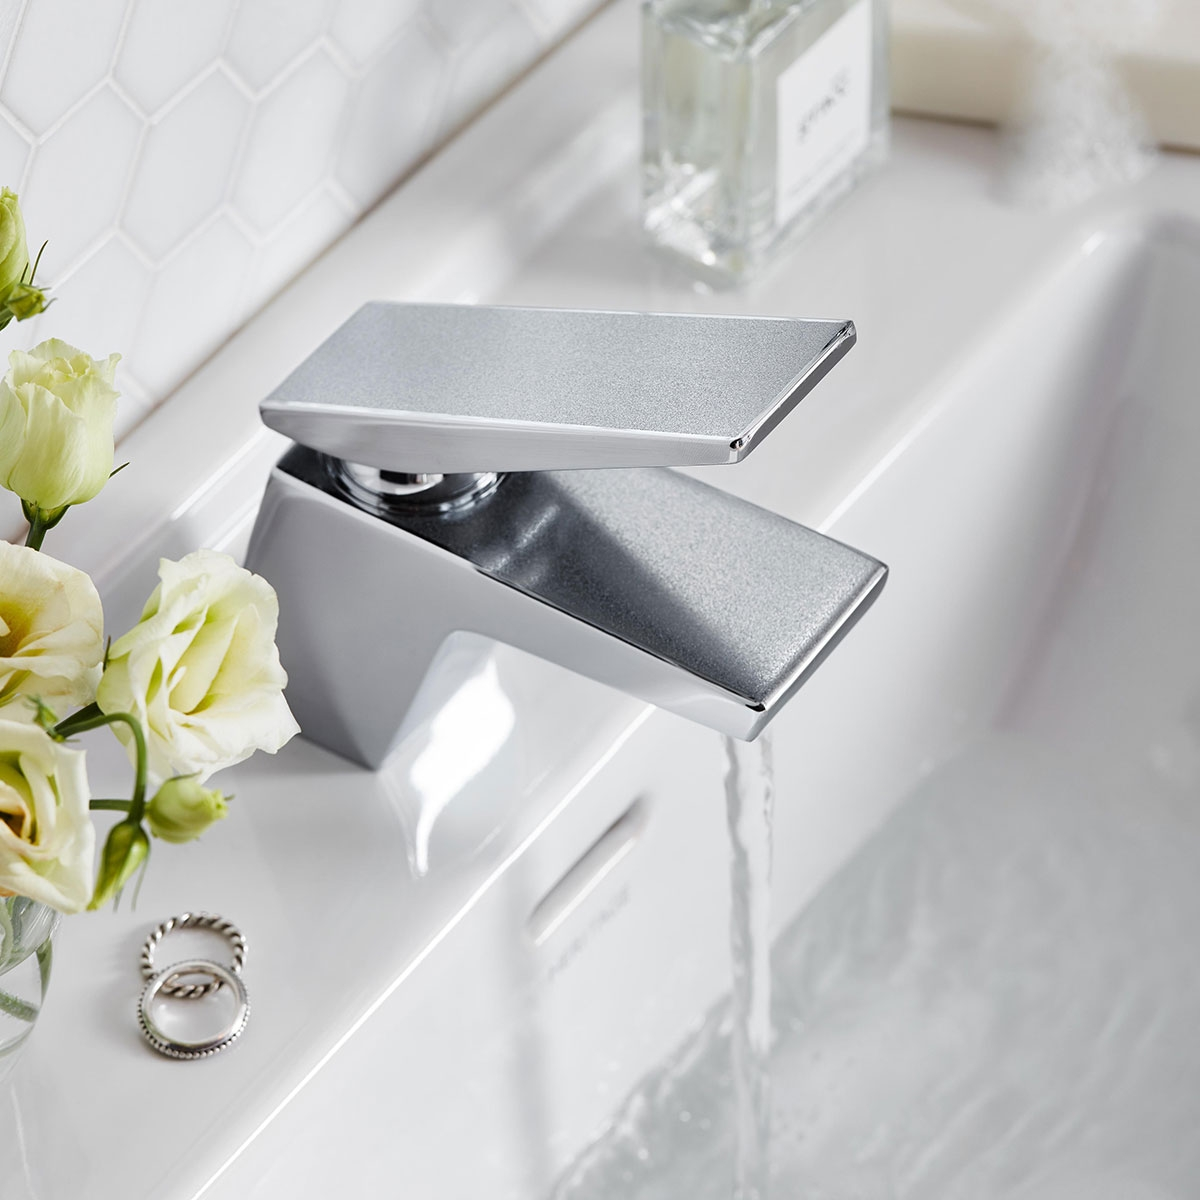 Bristan Metallix Sail Basin Mixer Tap With Clicker Waste- Silver Sparkle-0